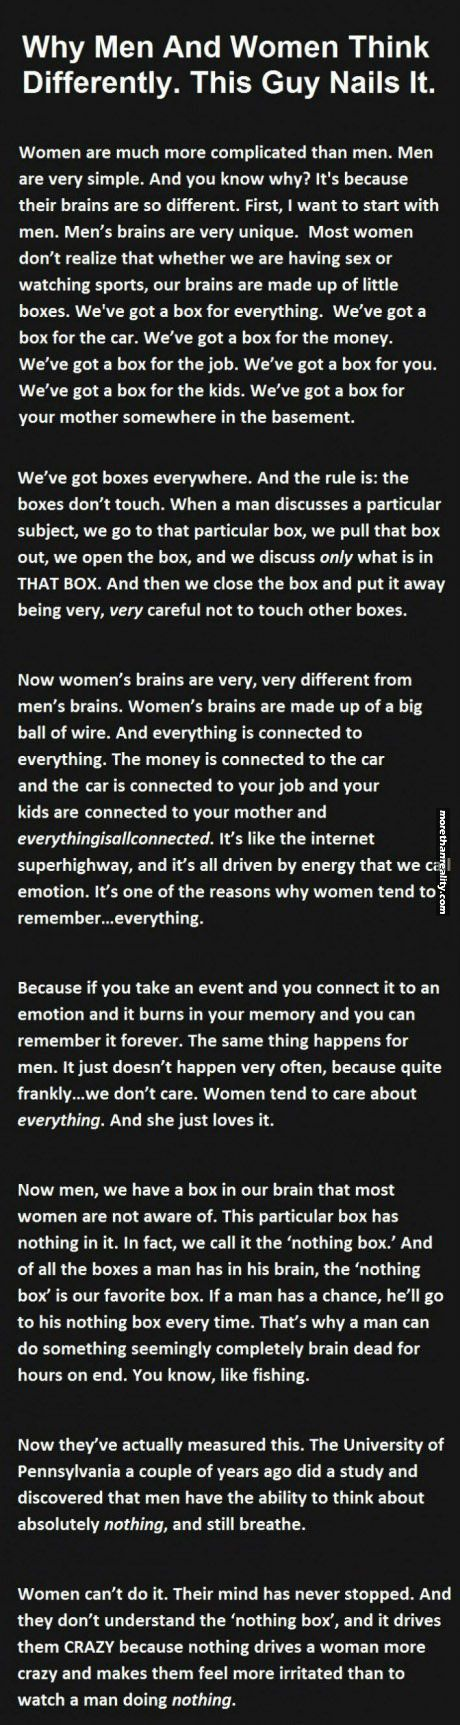 How women and men think